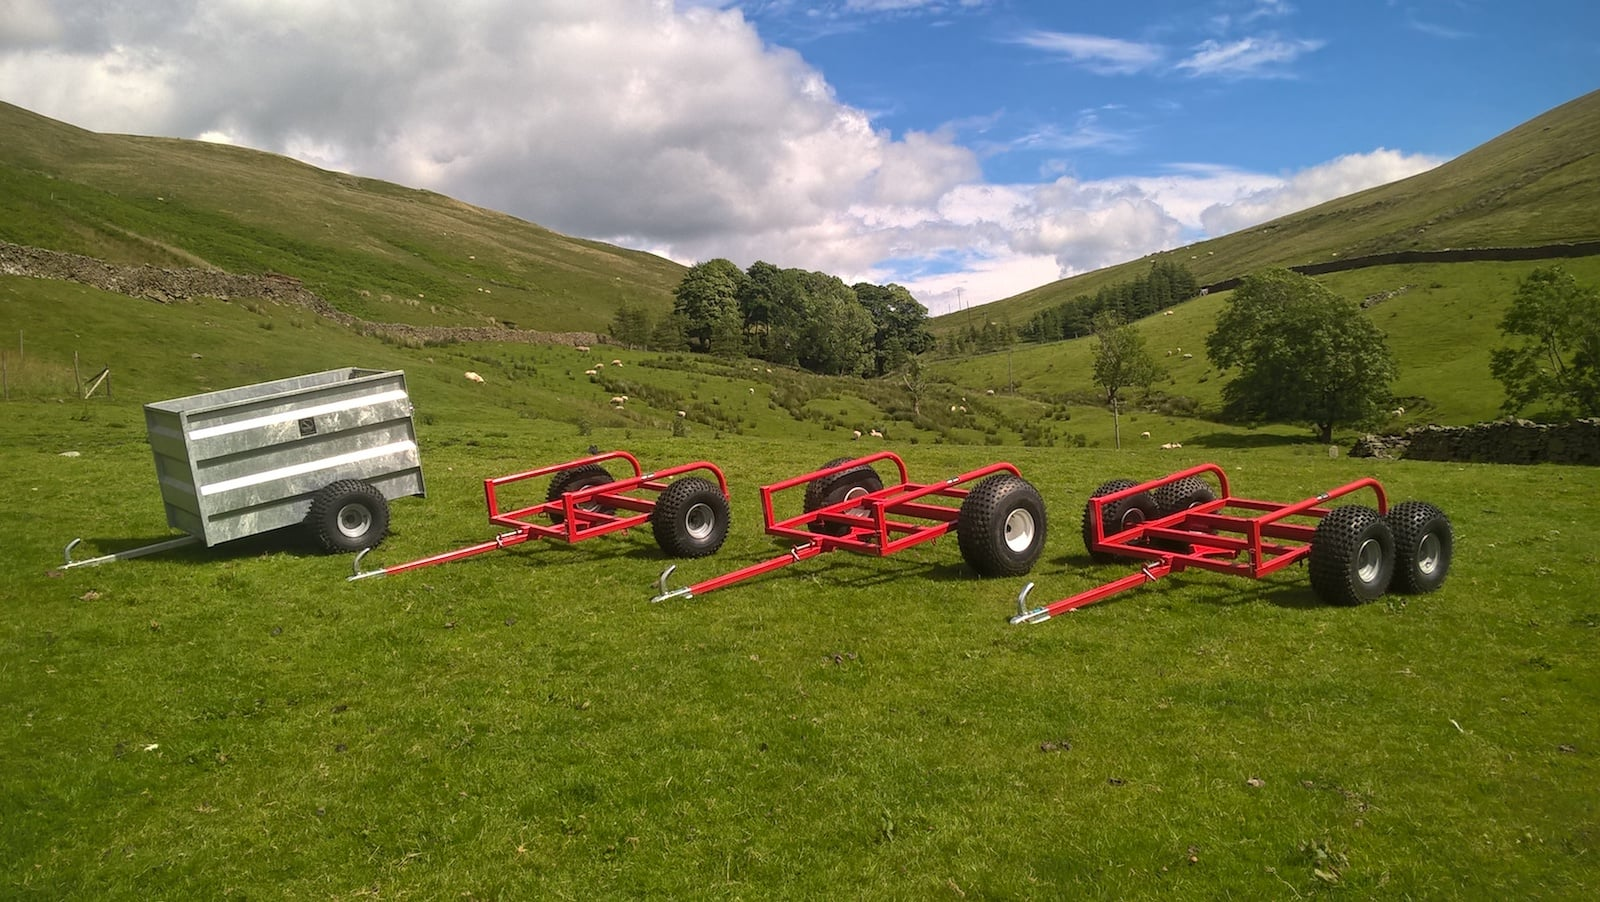 Williams ATV Trailers